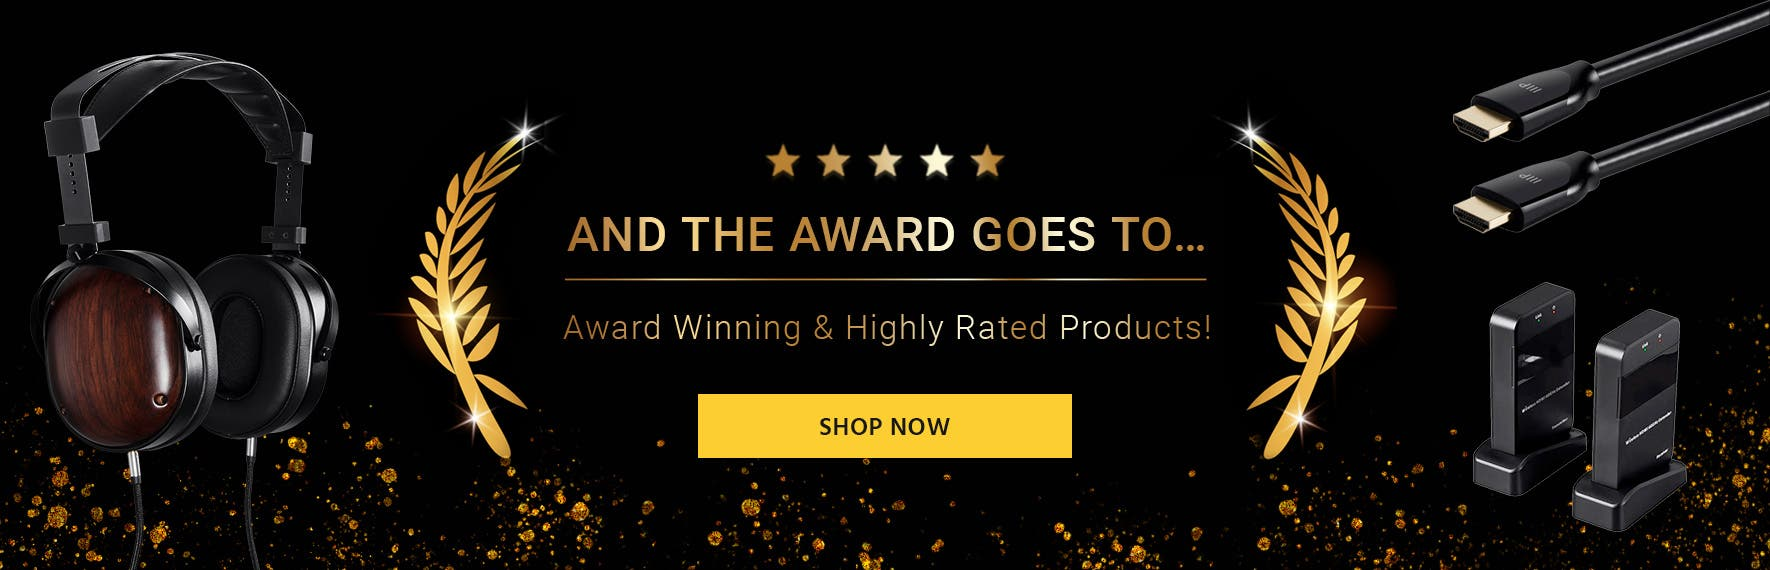 And the award goes to.... award winning products